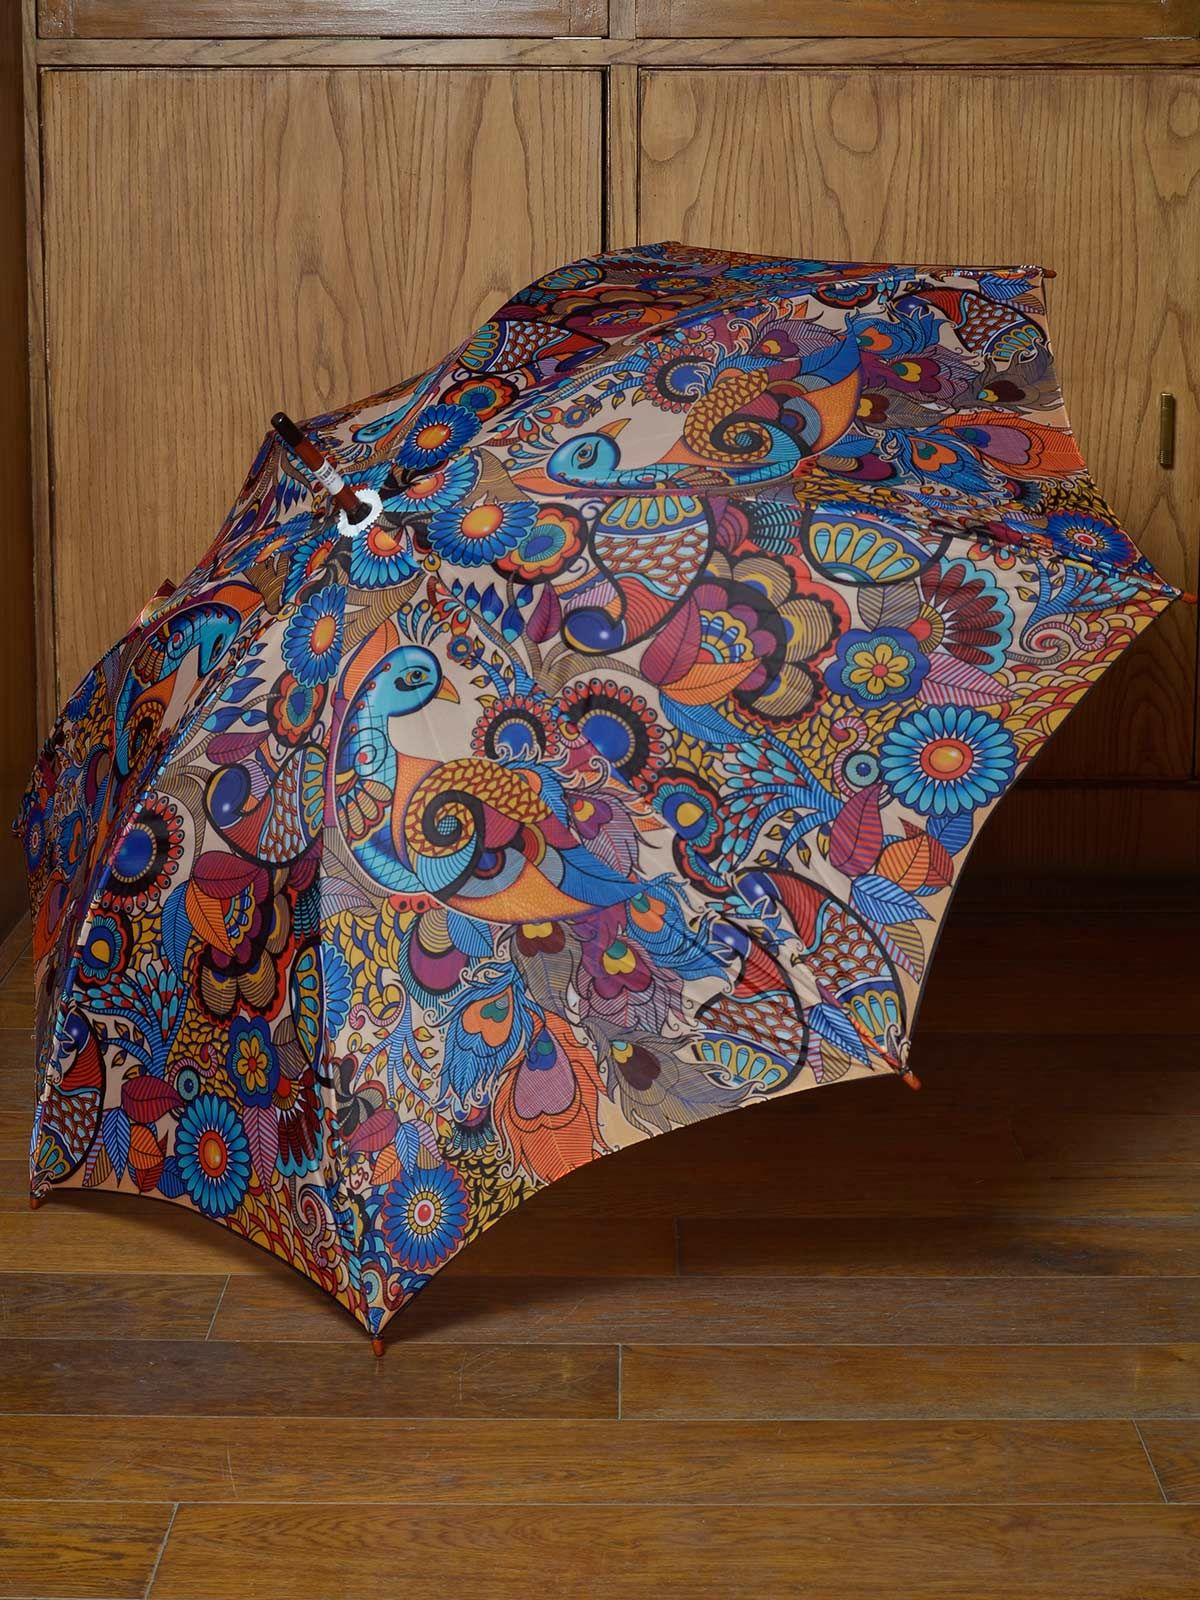 Multicolored Gypsy umbrella